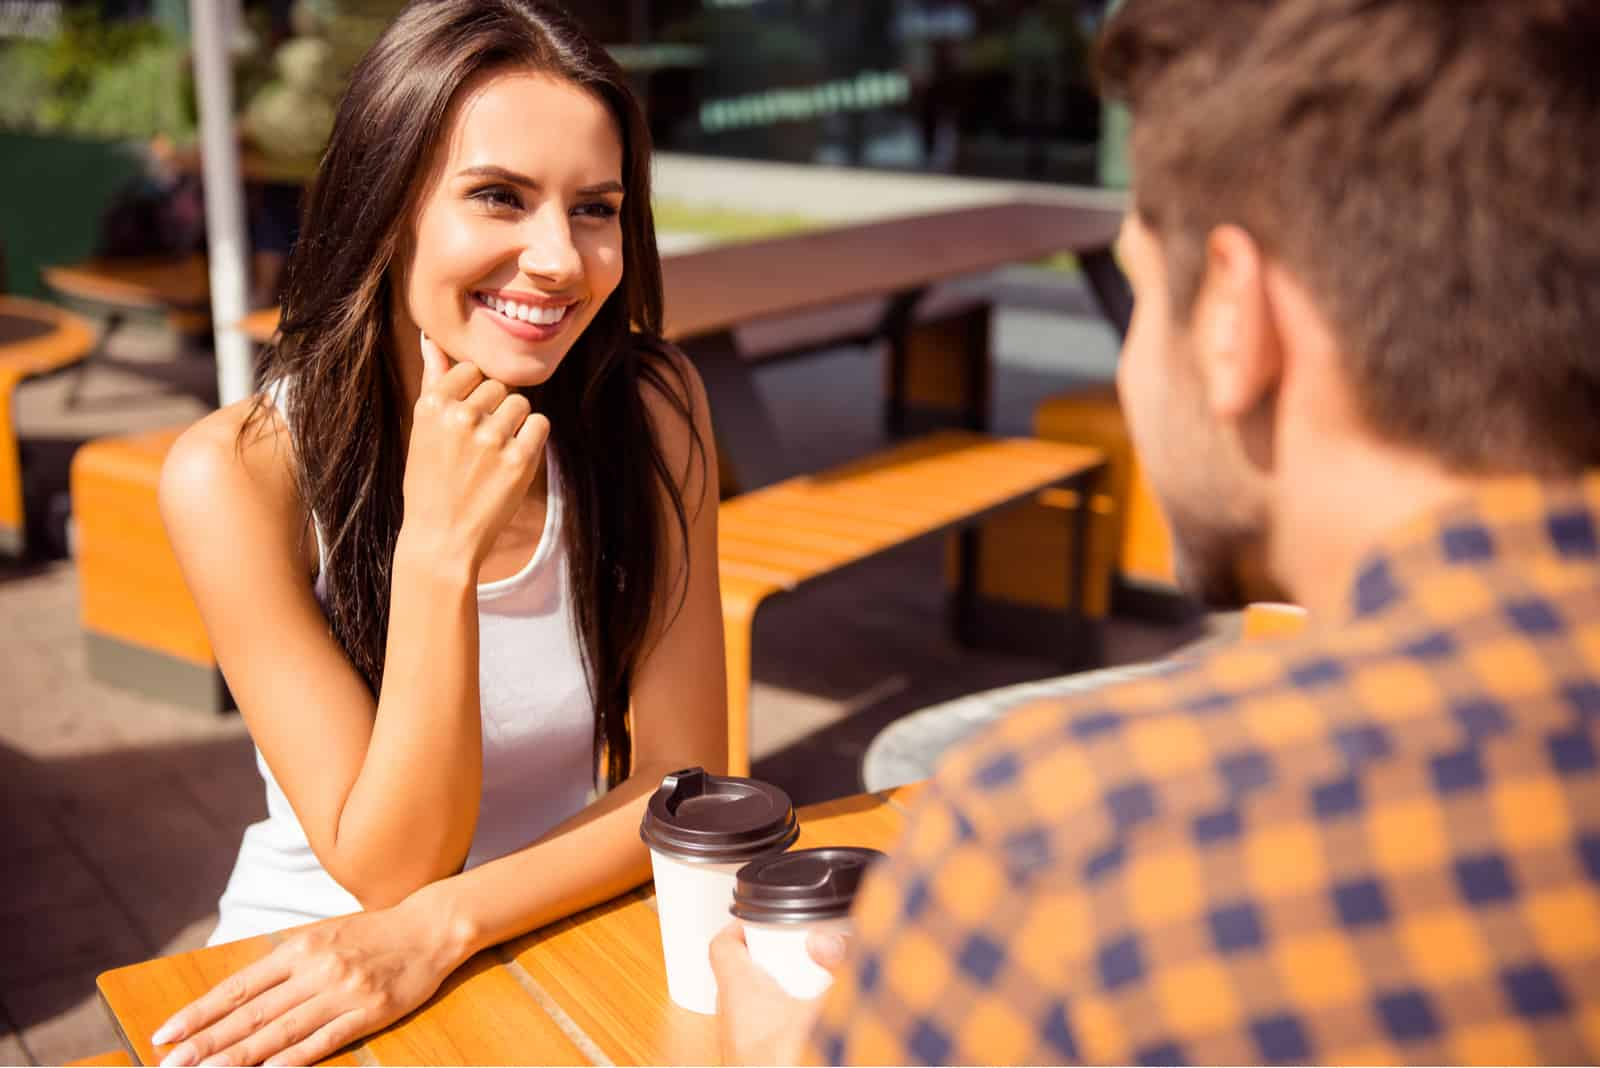 a couple in love sitting at a table outdoors and talking